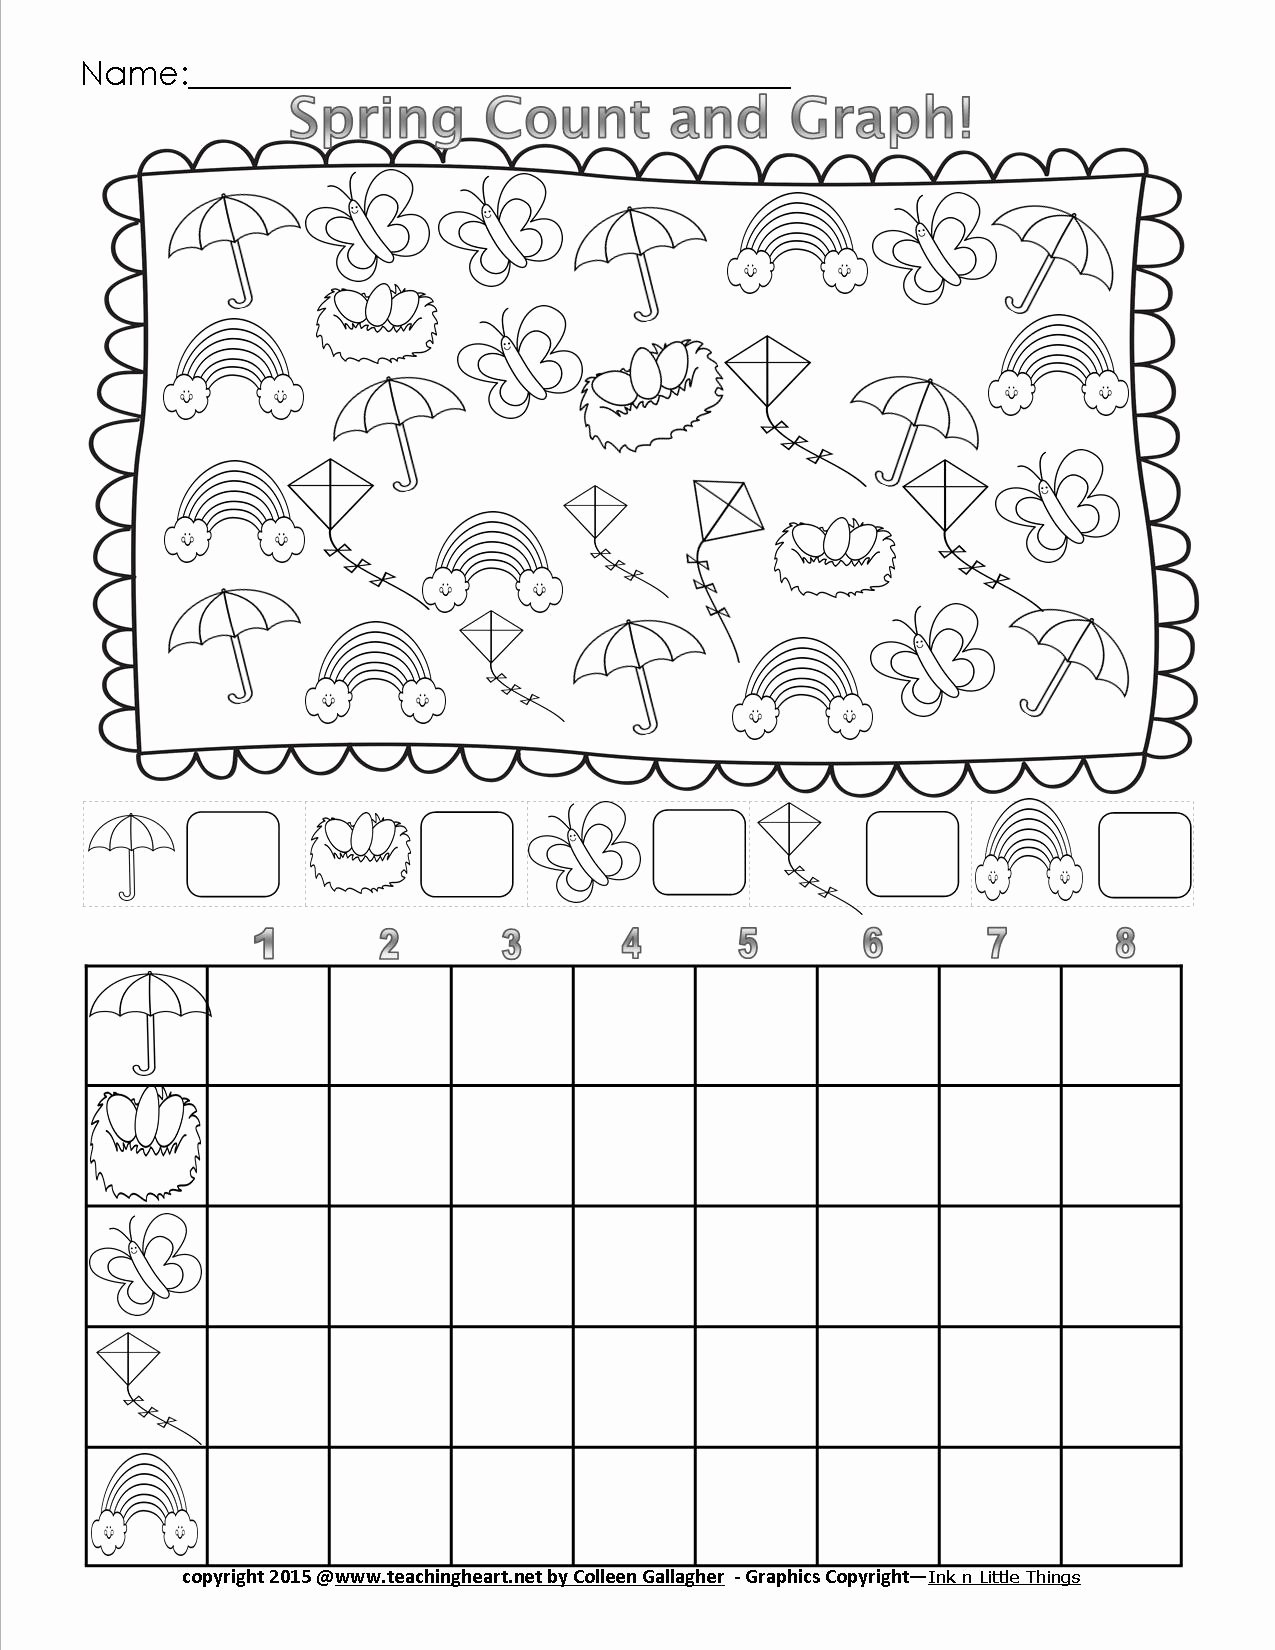 Heart Worksheets for Preschoolers Awesome Spring Count and Graph Free Teaching Heart Blog Graphing